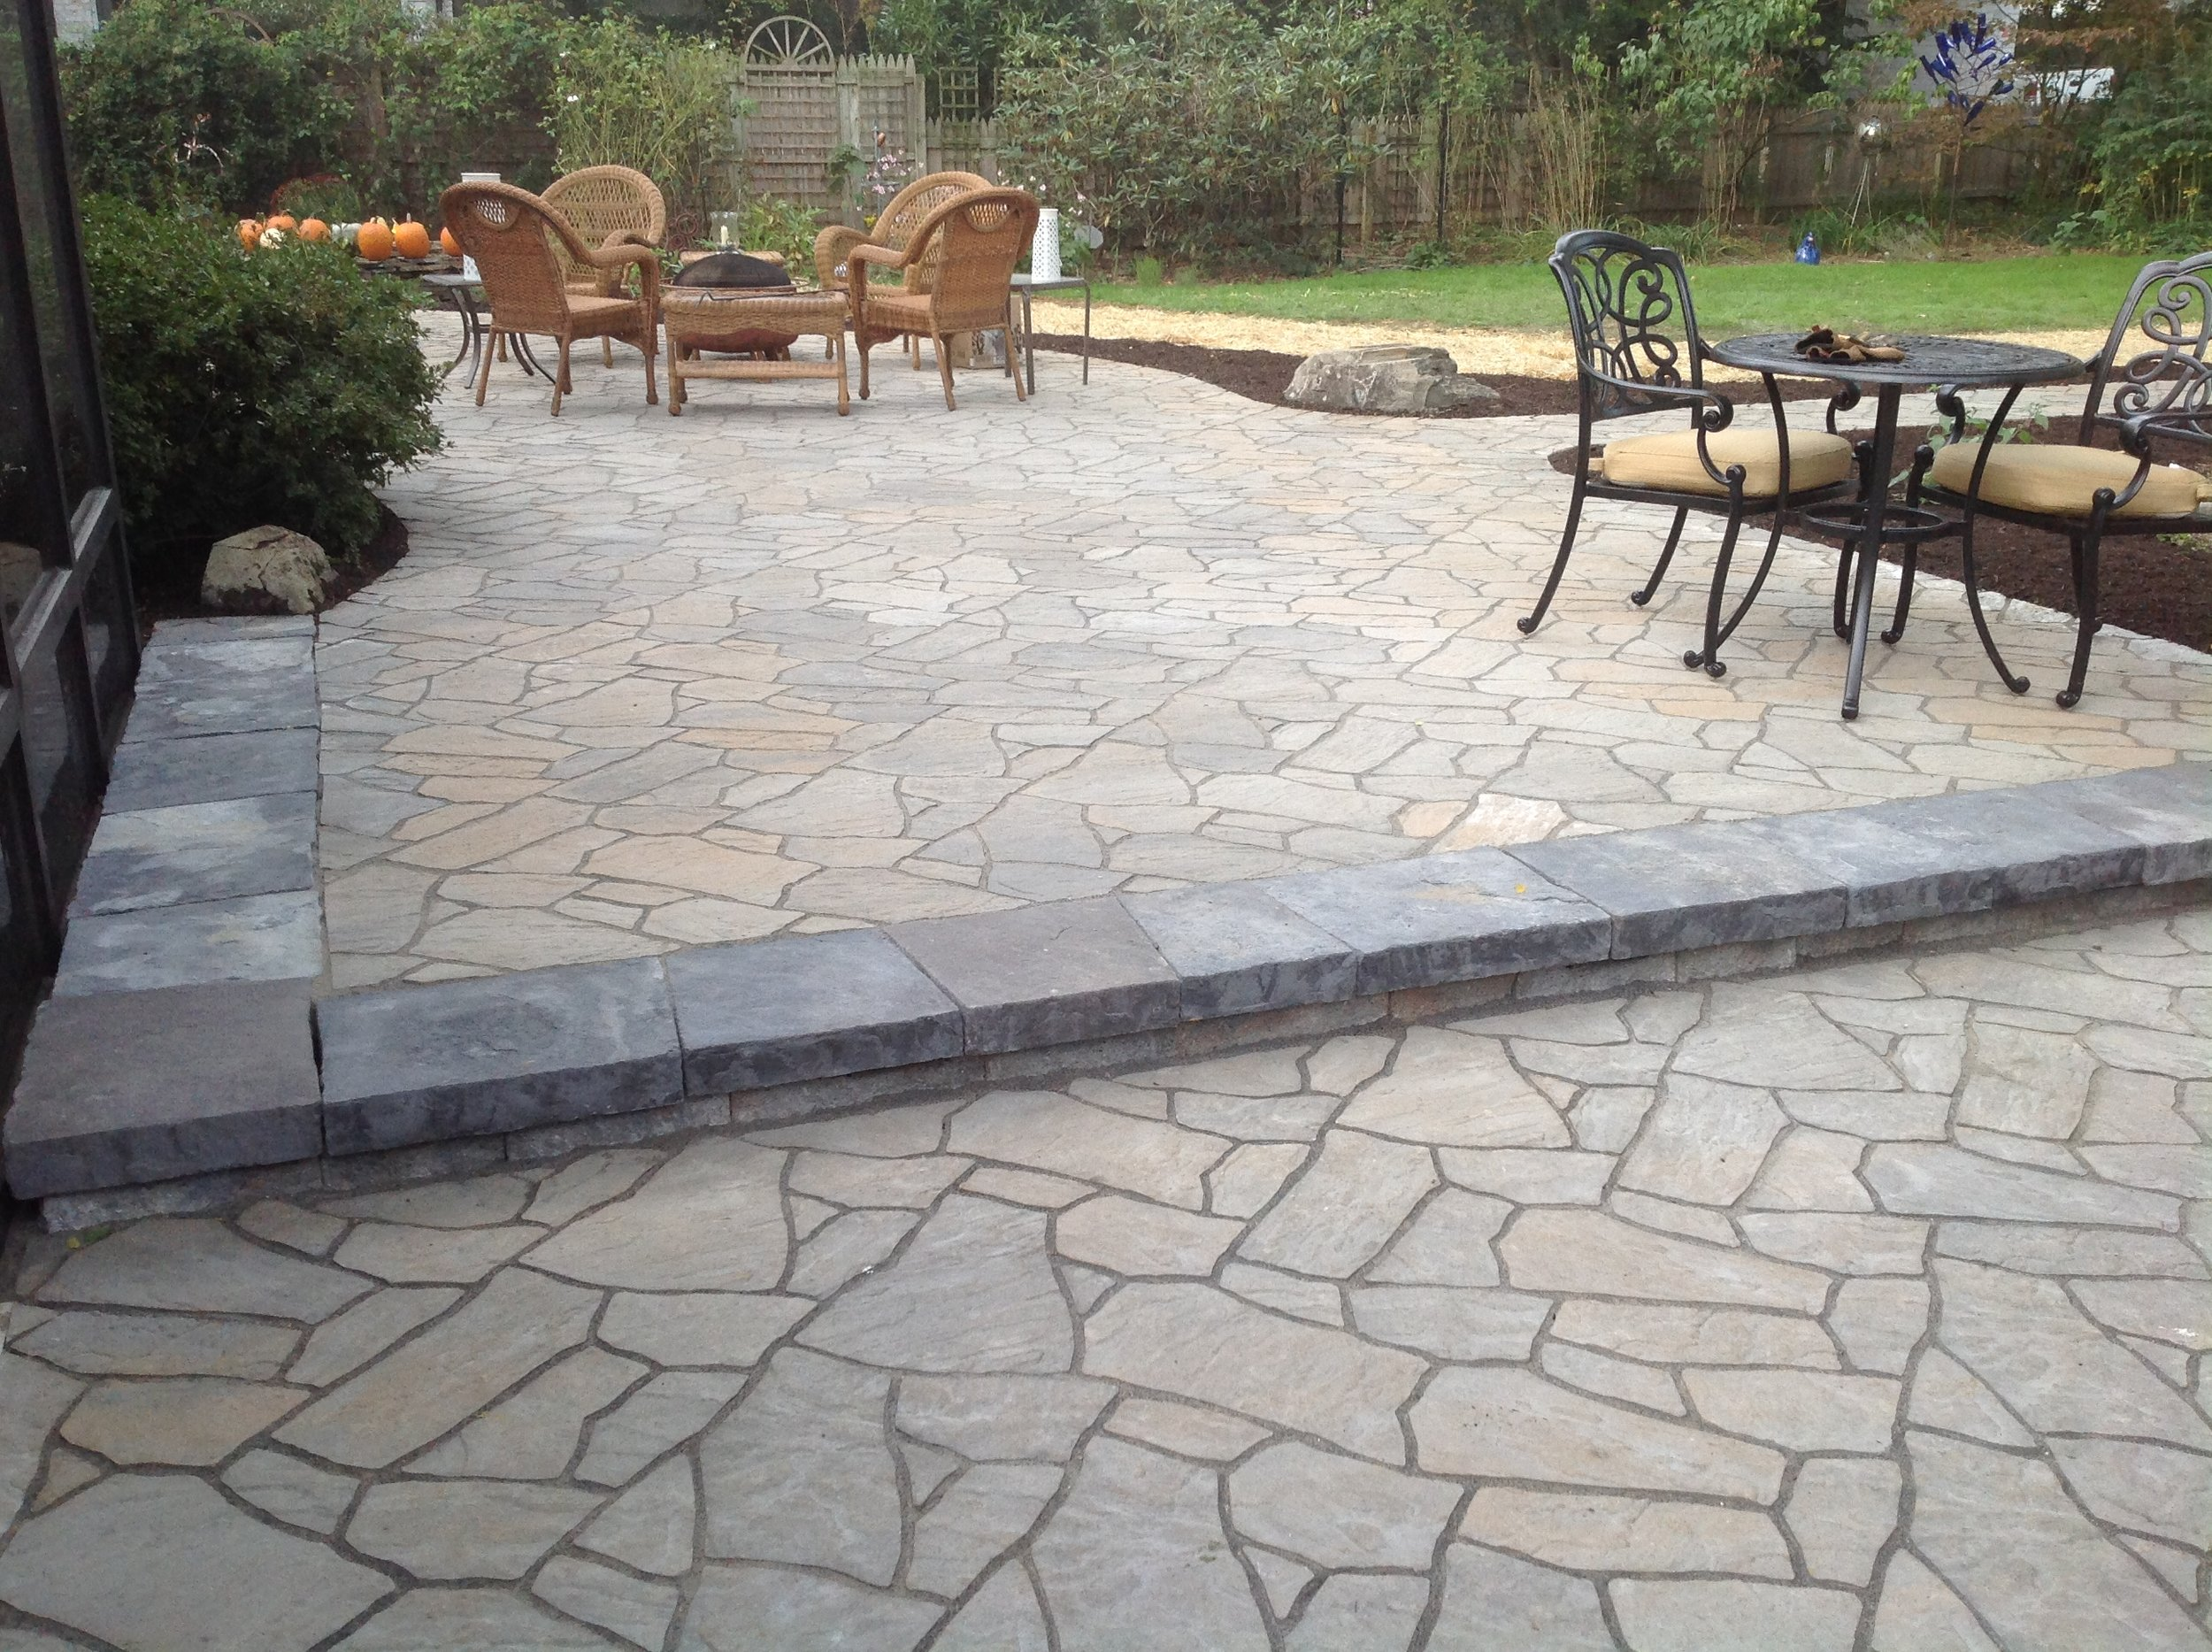 This new patio is made from pavers to resemble flagstone. The raised portion is to help protect the vulnerable tree roots. Lights under the step add safety for evening patio use.